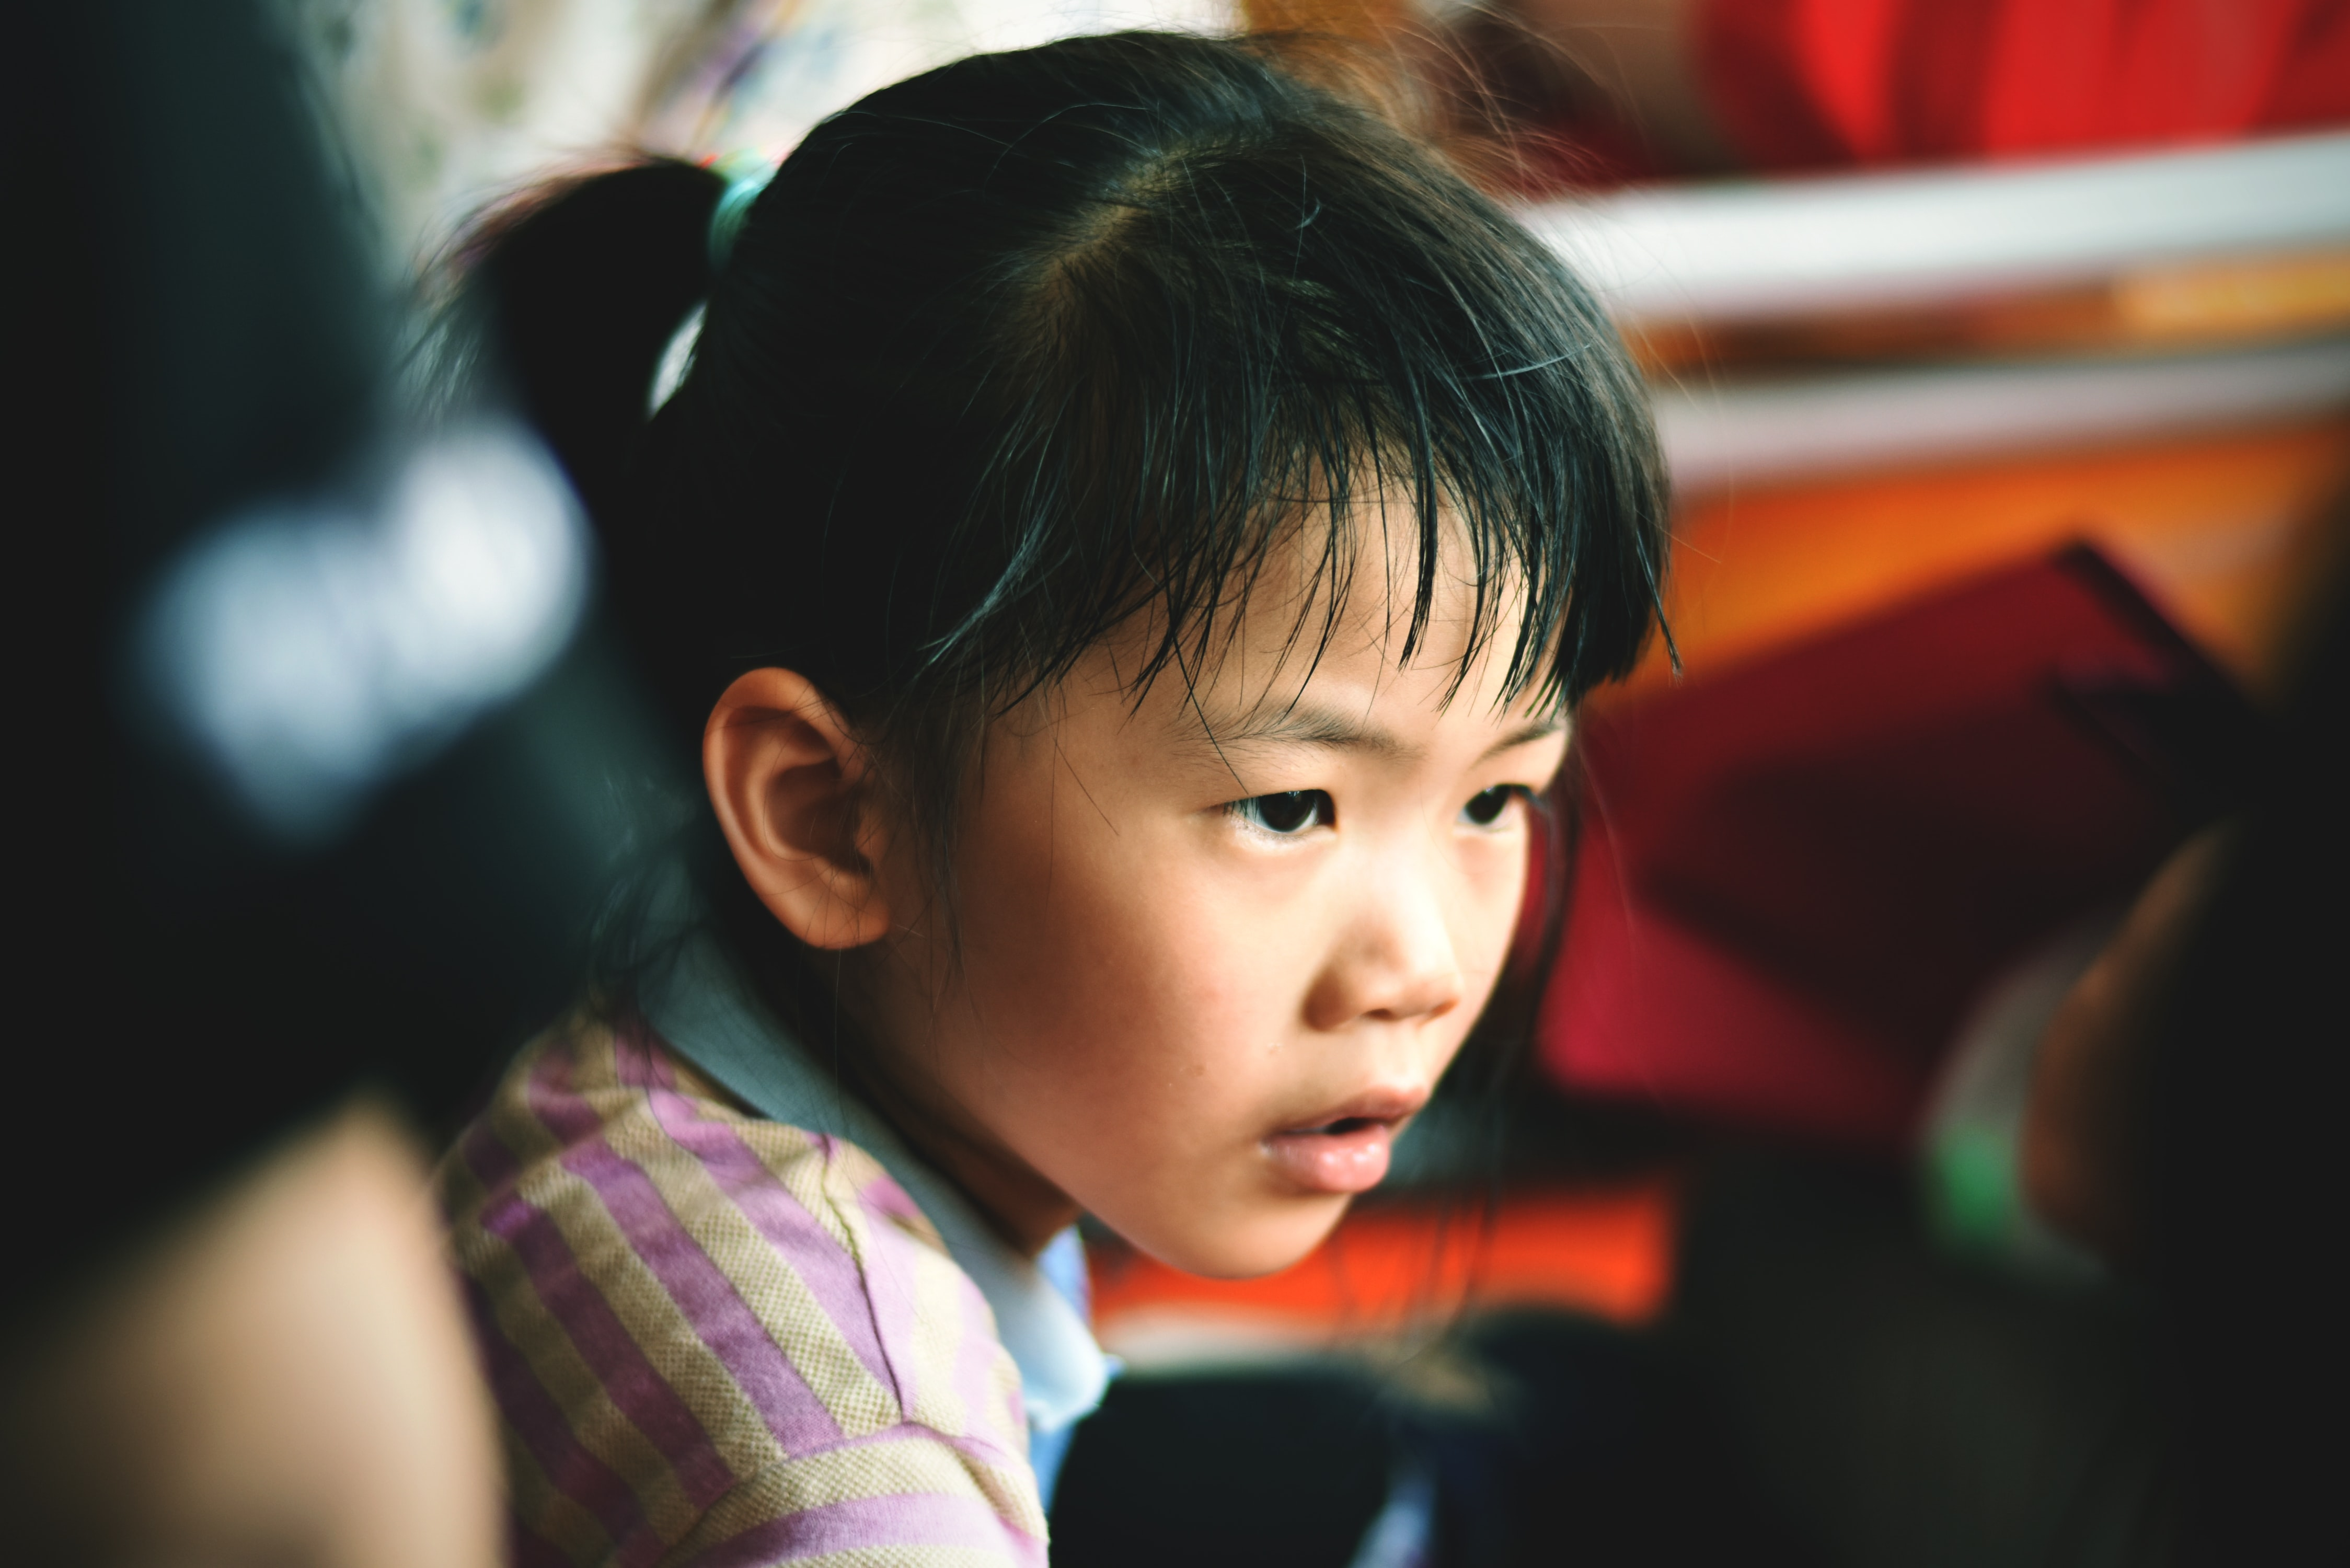 selective focus photography of girl wearing striped collared top